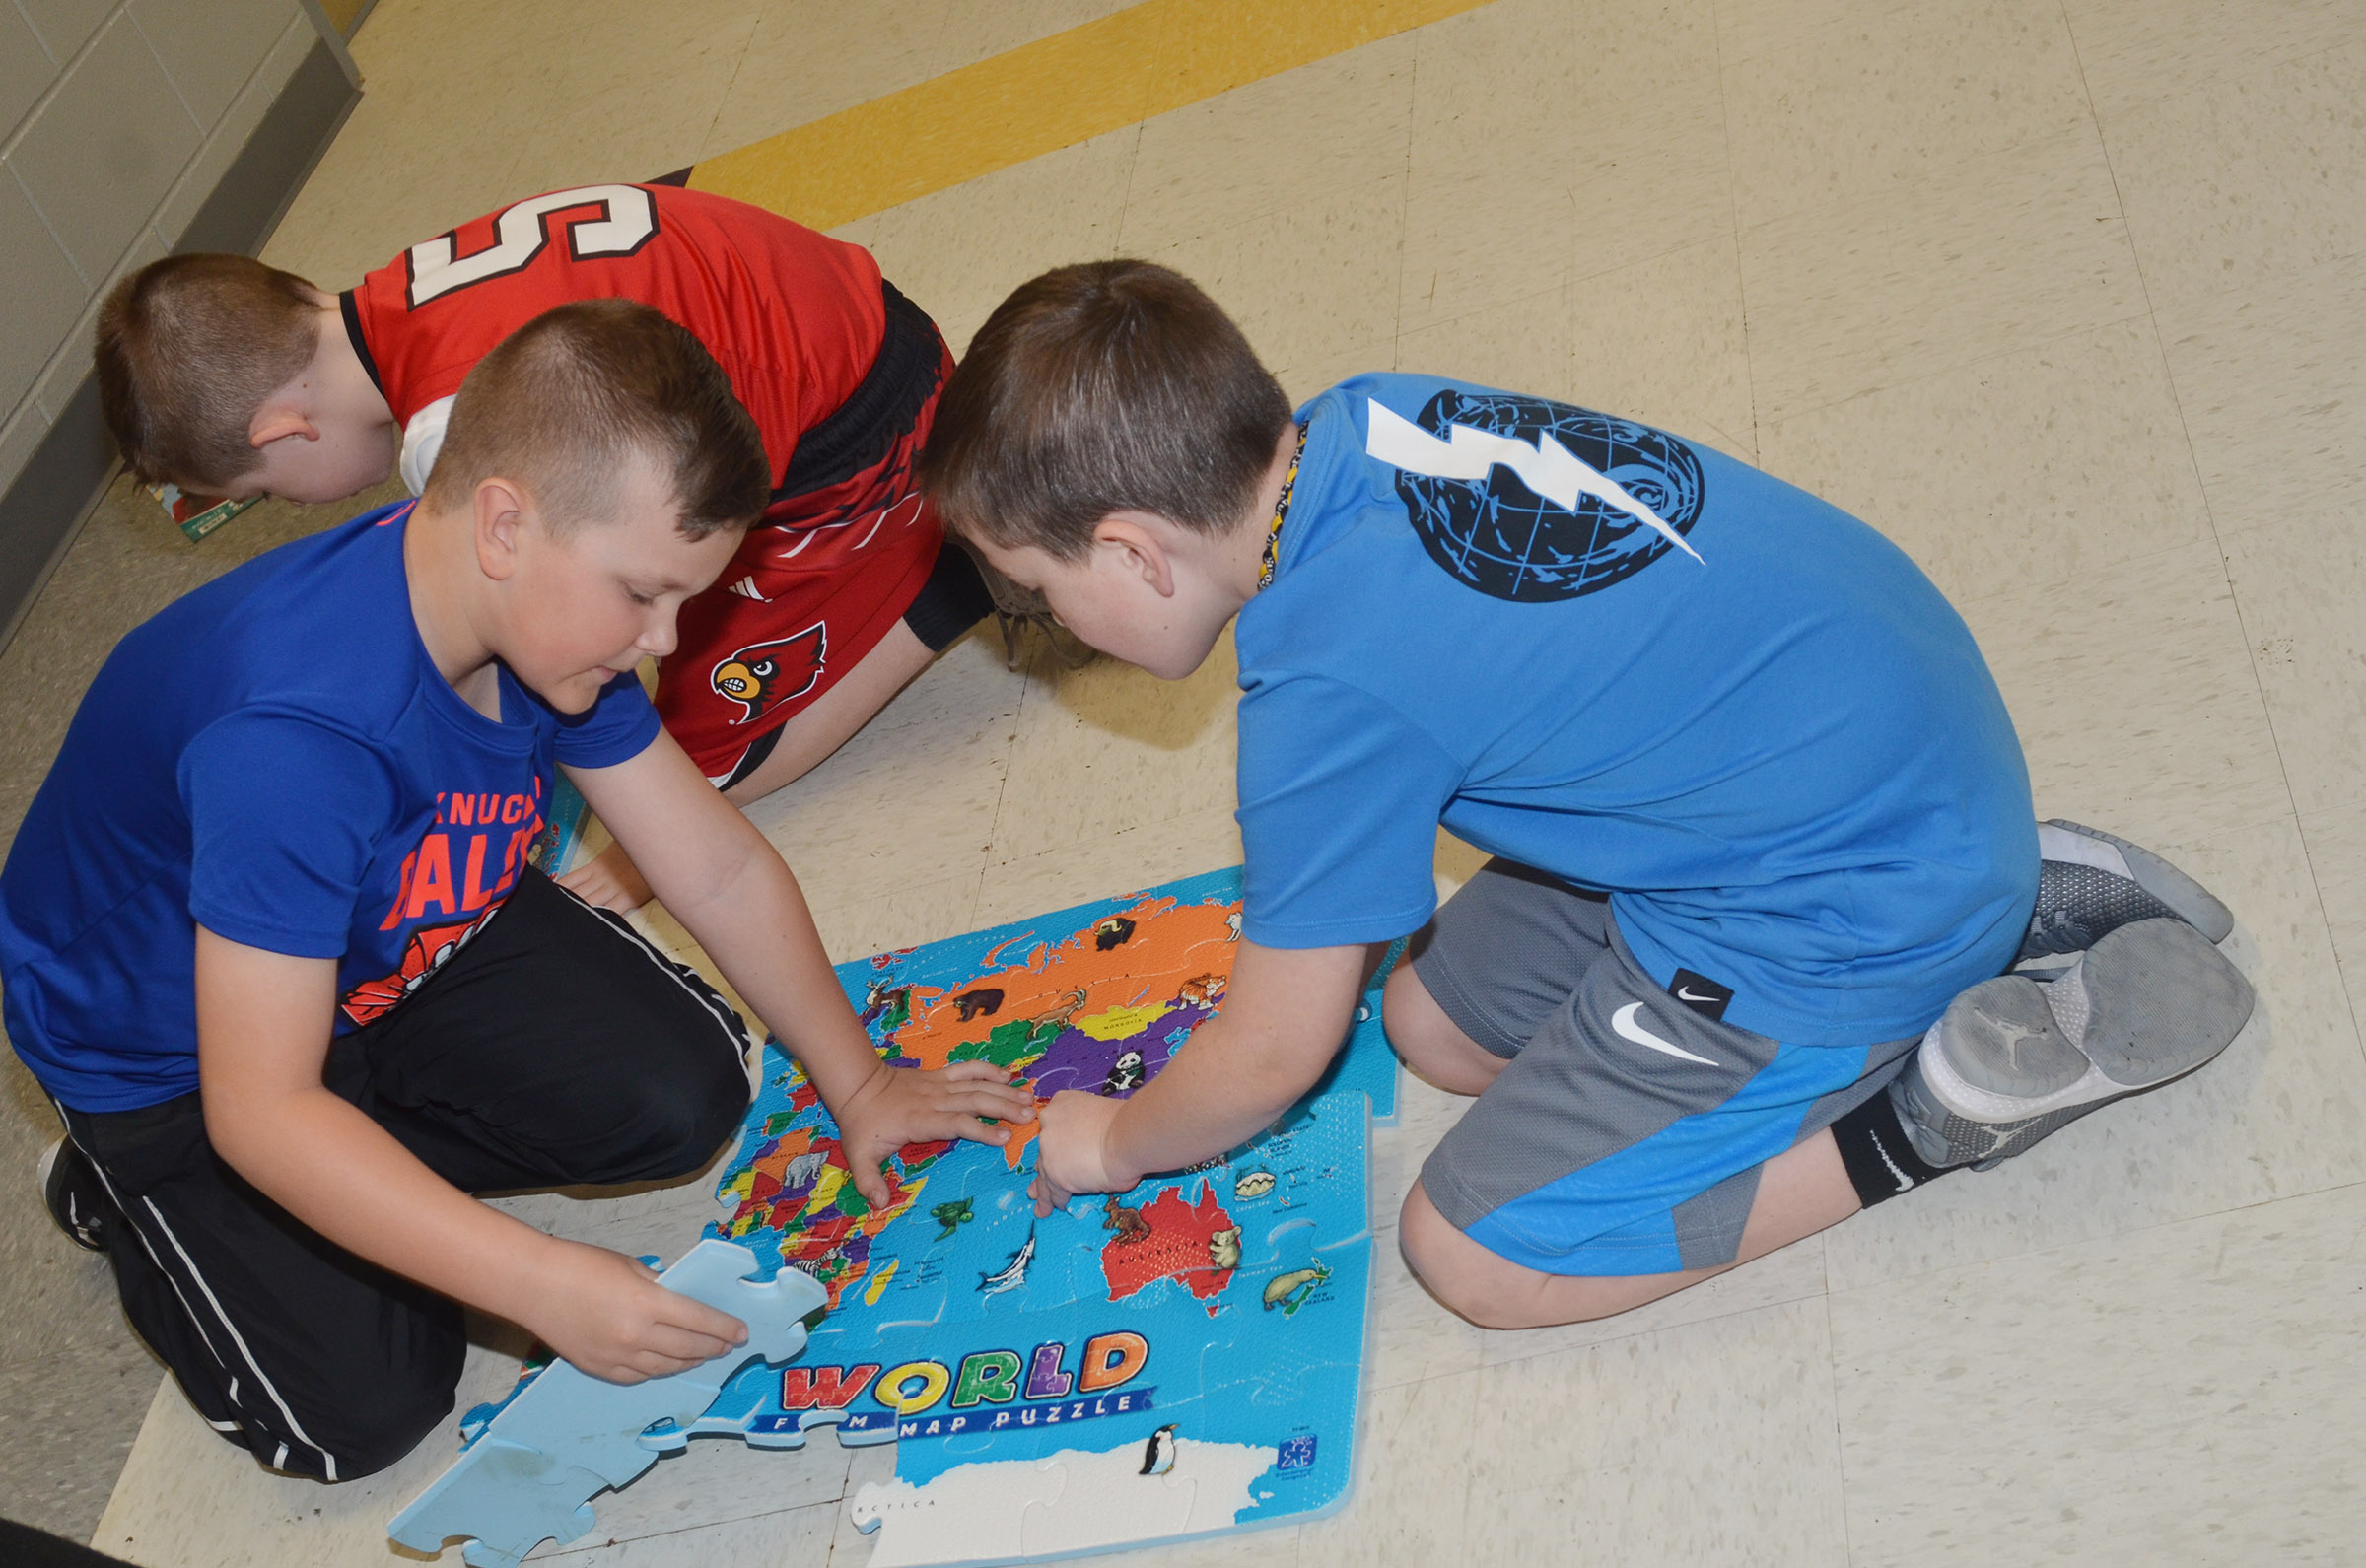 CES second-graders, from left, Cayton Lawhorn, Lanigan Price and Luke Adkins work as a team to put together a world map puzzle.